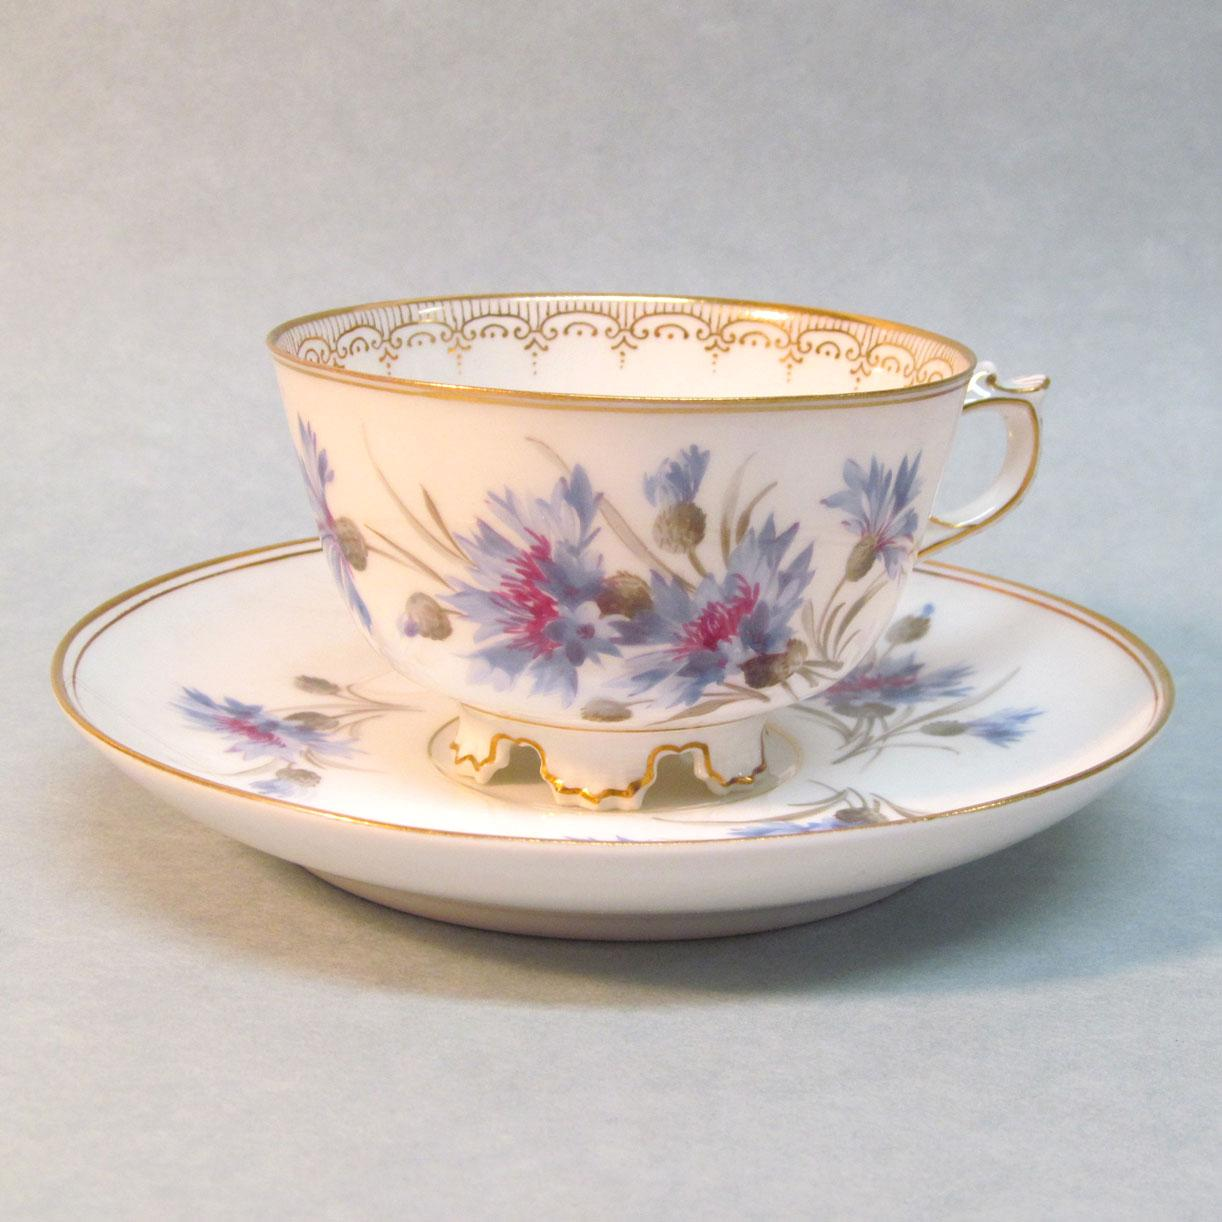 berlin porcelain kpm cup and saucer from rubylane sold. Black Bedroom Furniture Sets. Home Design Ideas